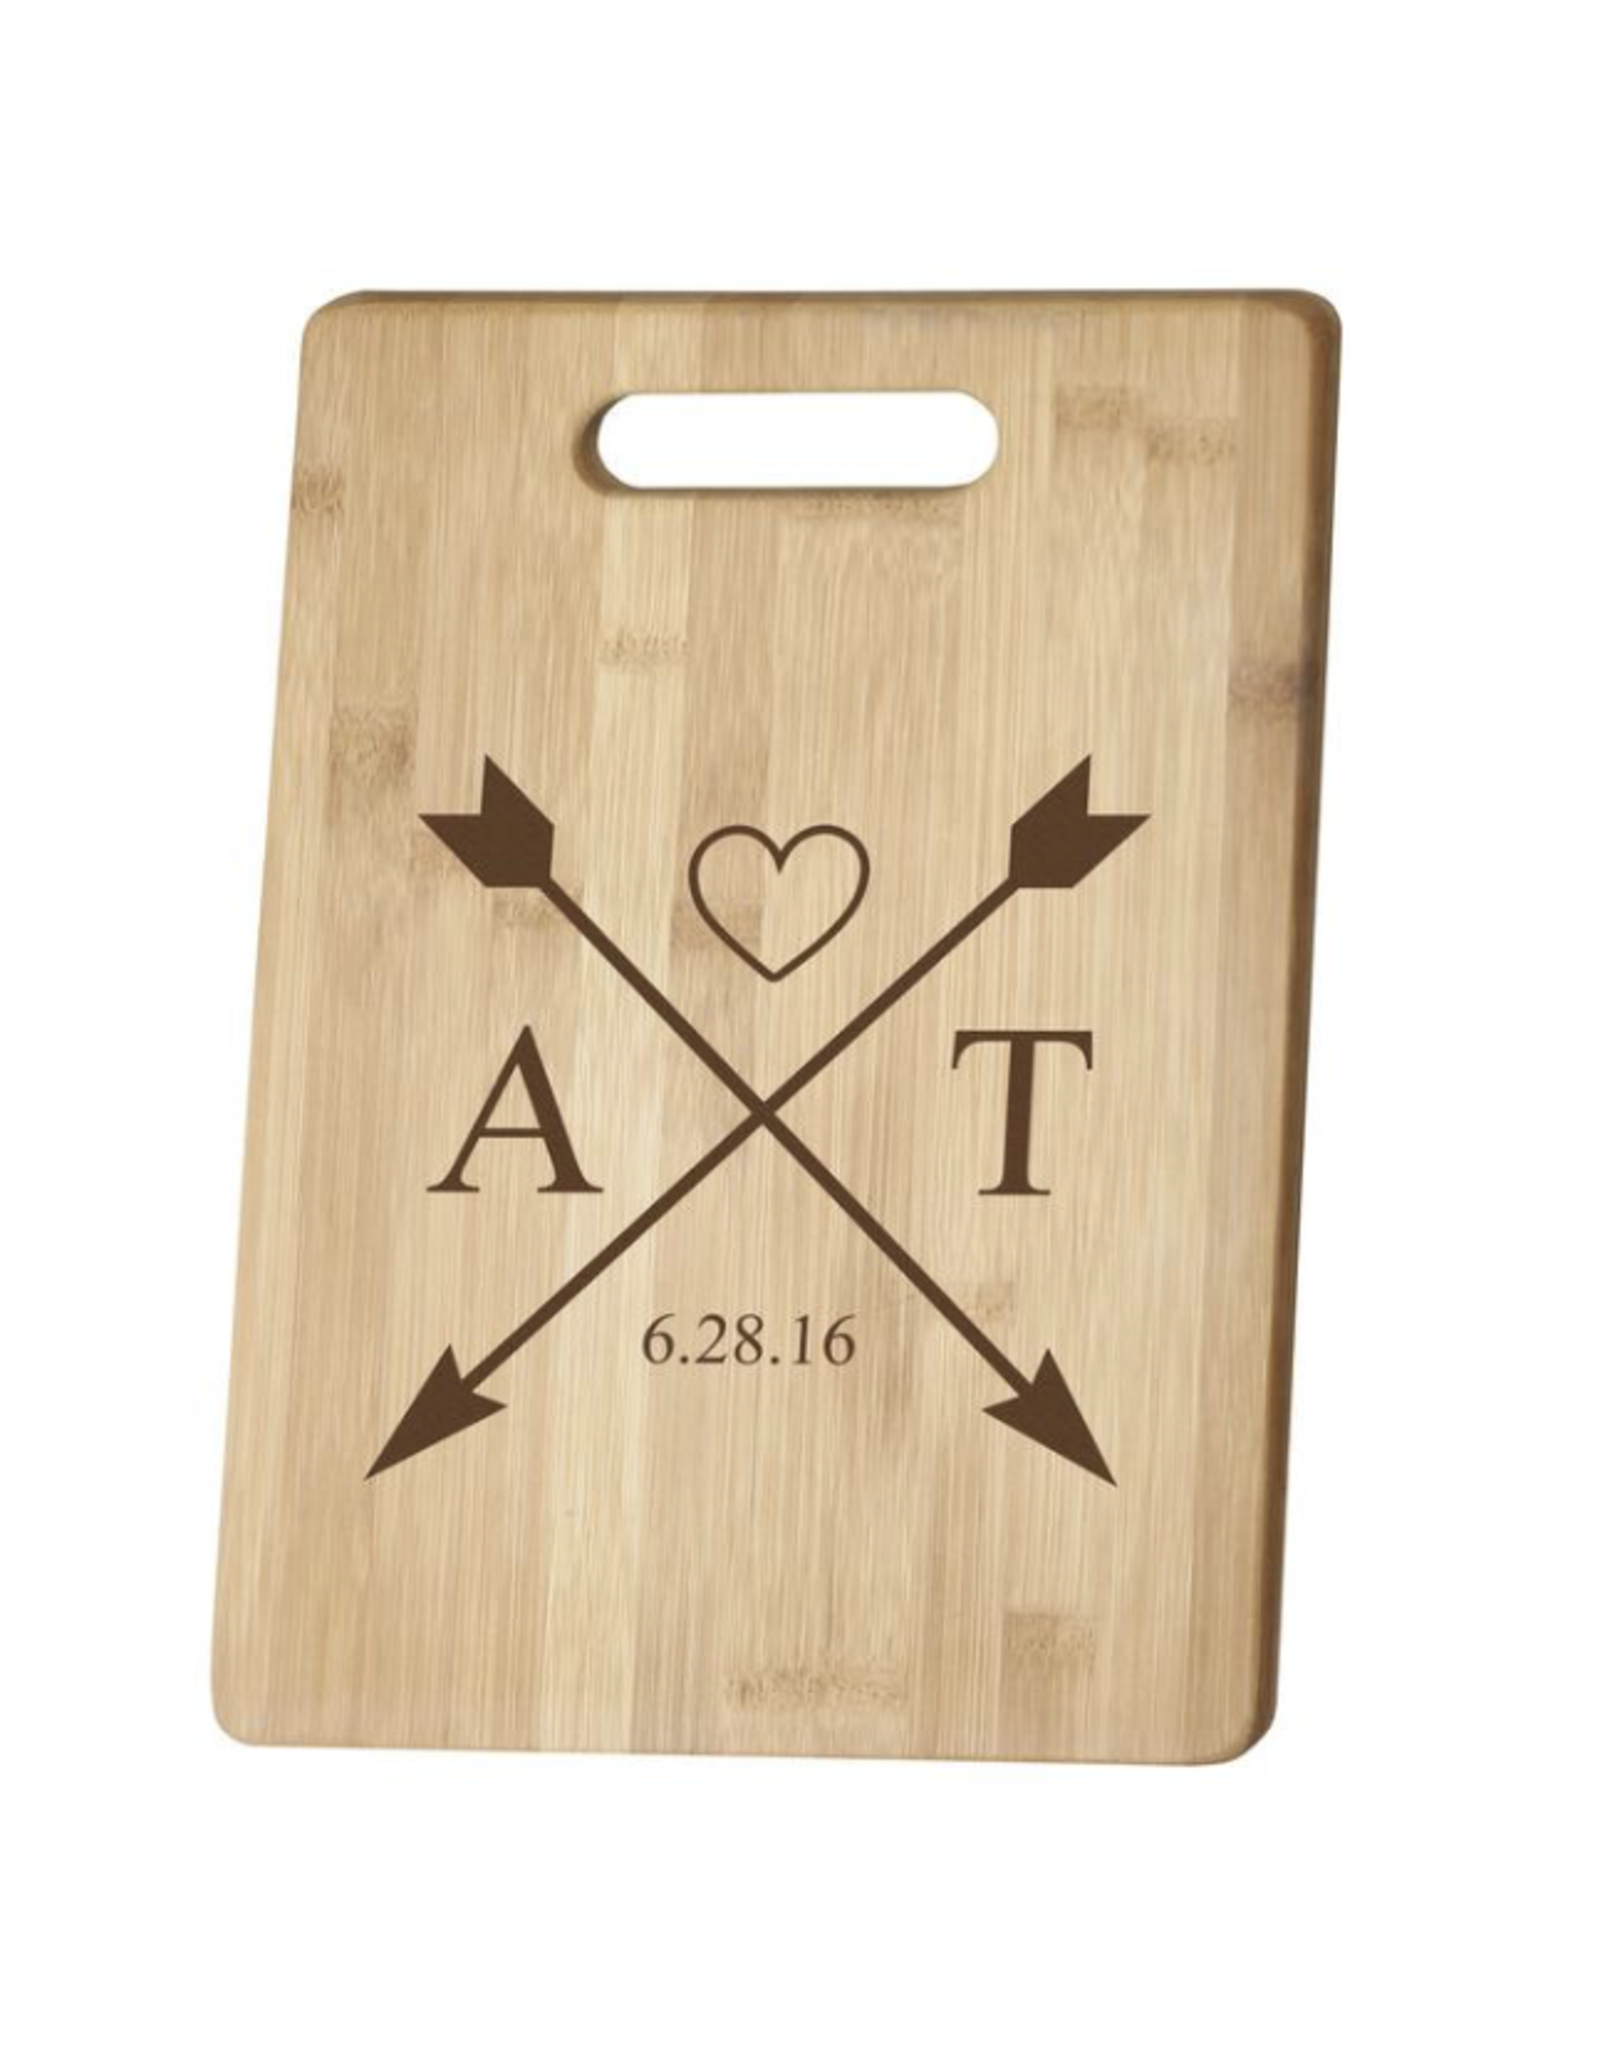 P Graham Dunn Bamboo Cutting Board 7x14 Includes Laser Engraving